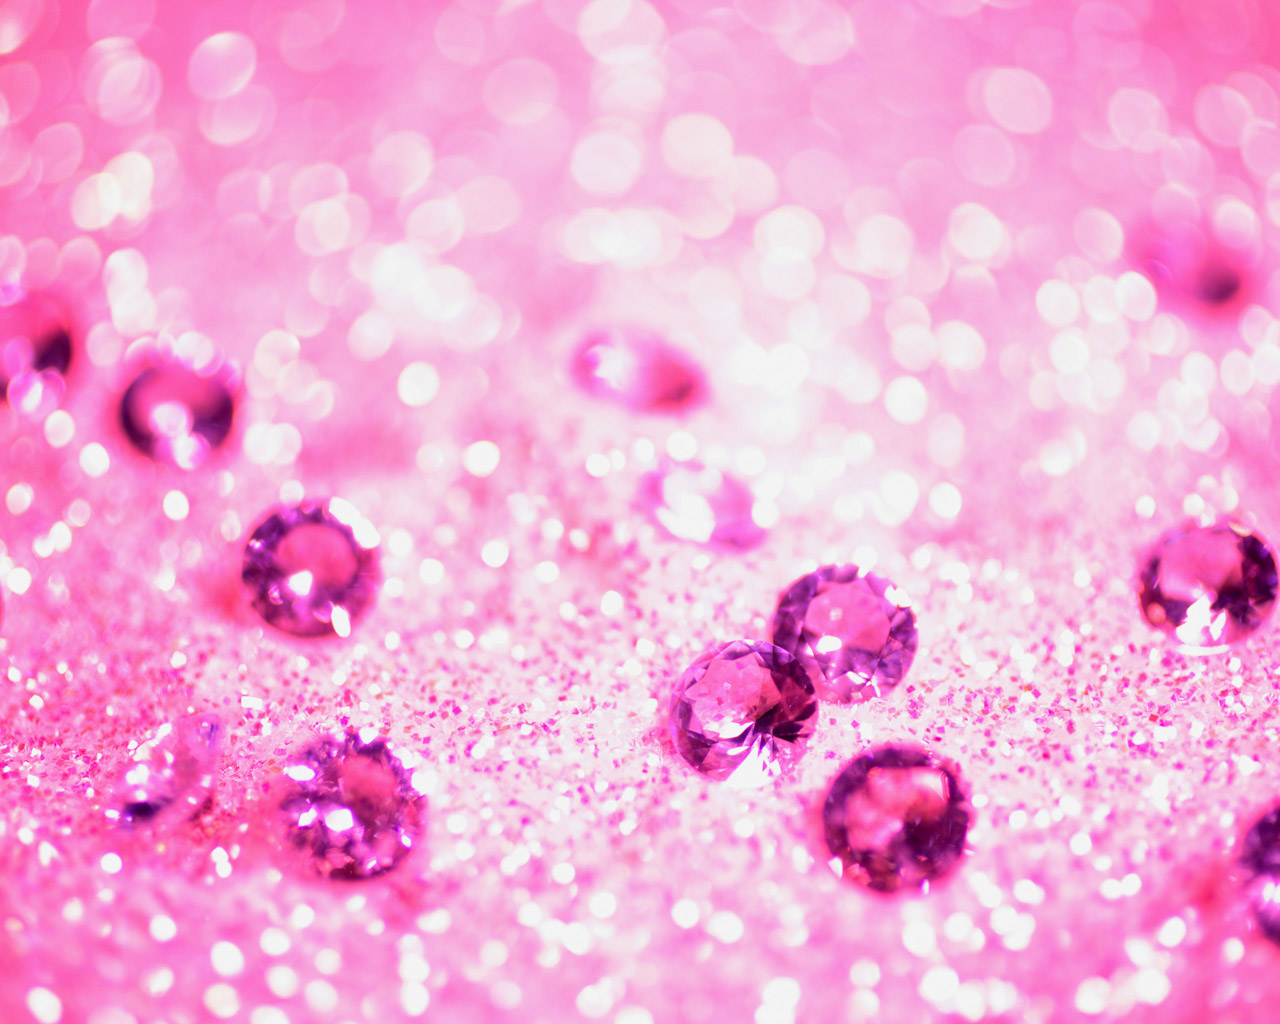 Pink Wallpaper Screensaver HD